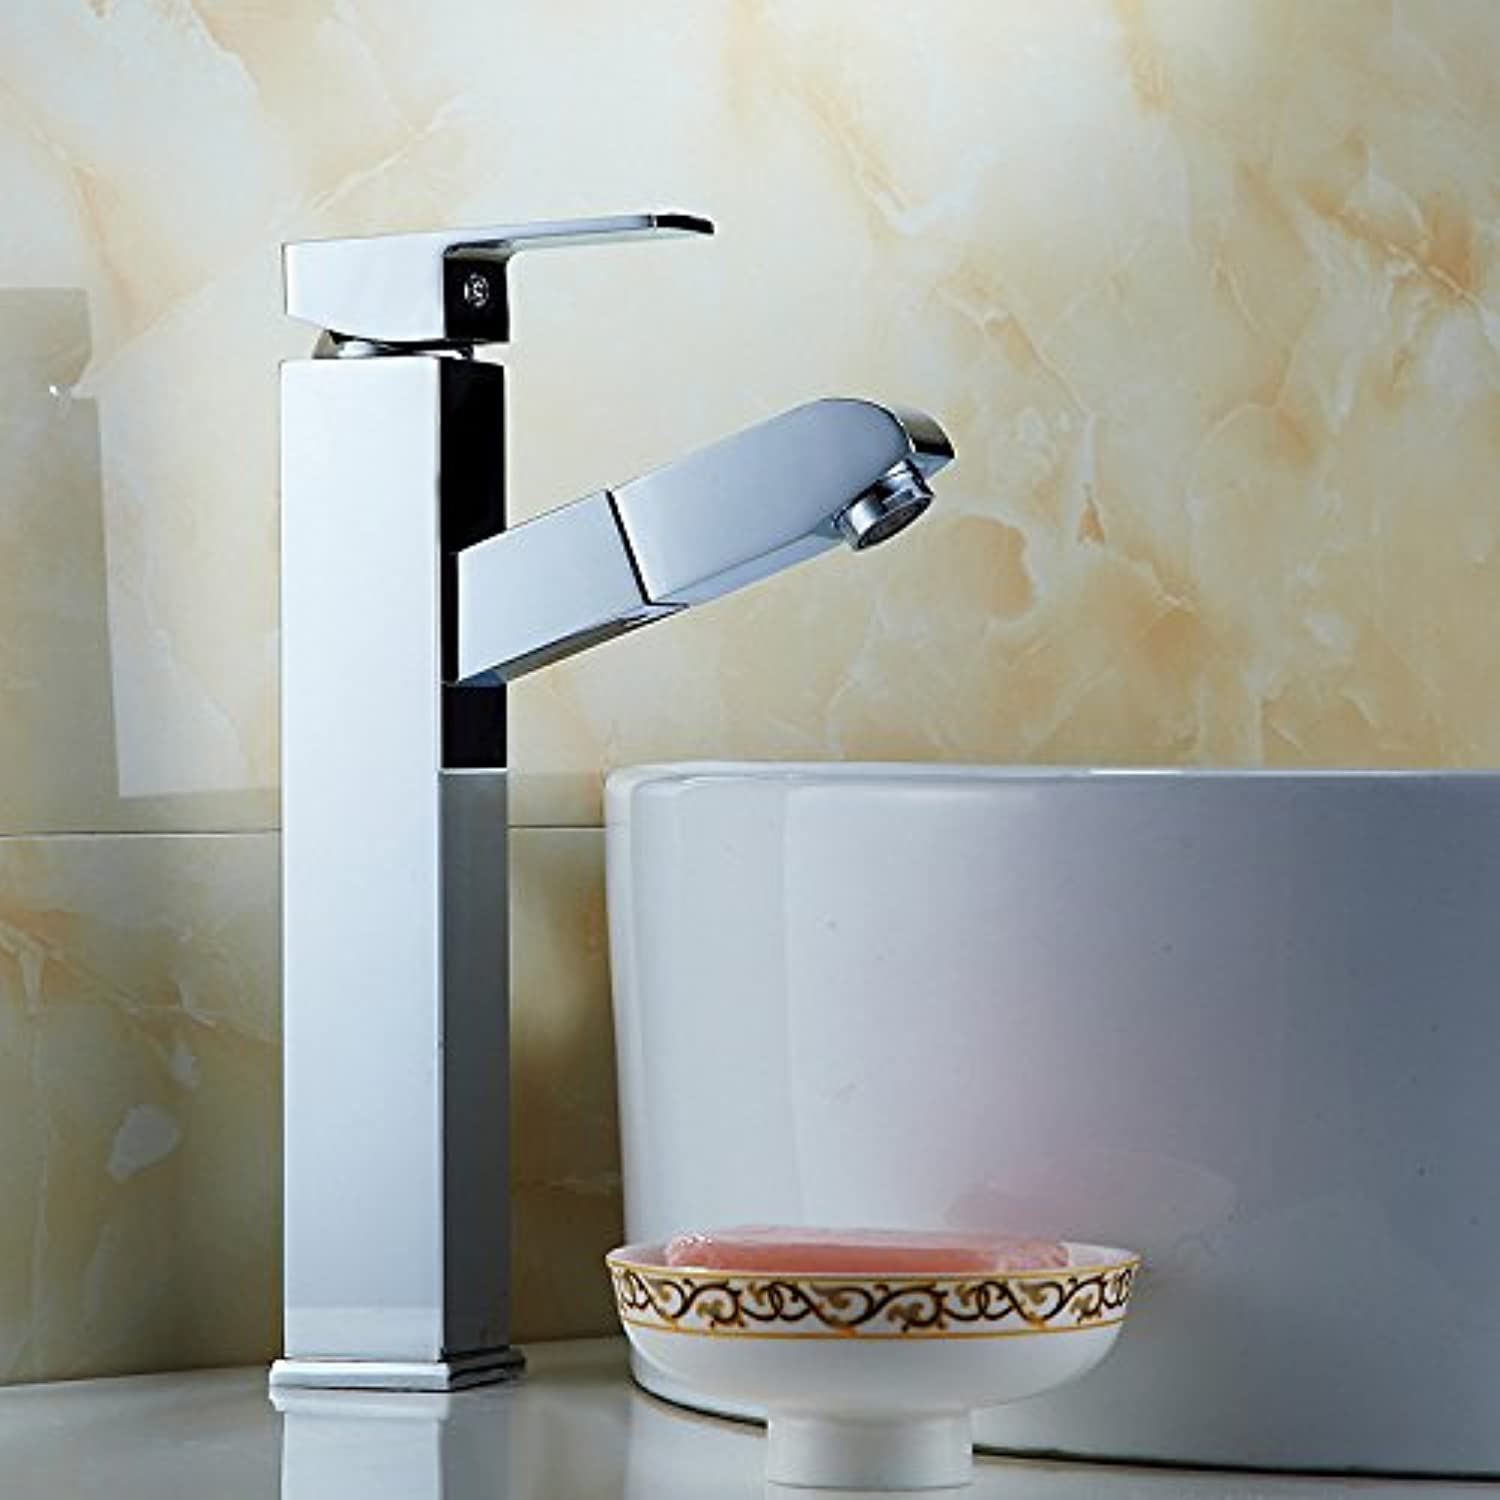 redOOY Copper Faucet_Highlight Pull Faucet Single Hole Telescopic Above Counter Basin Washbasin